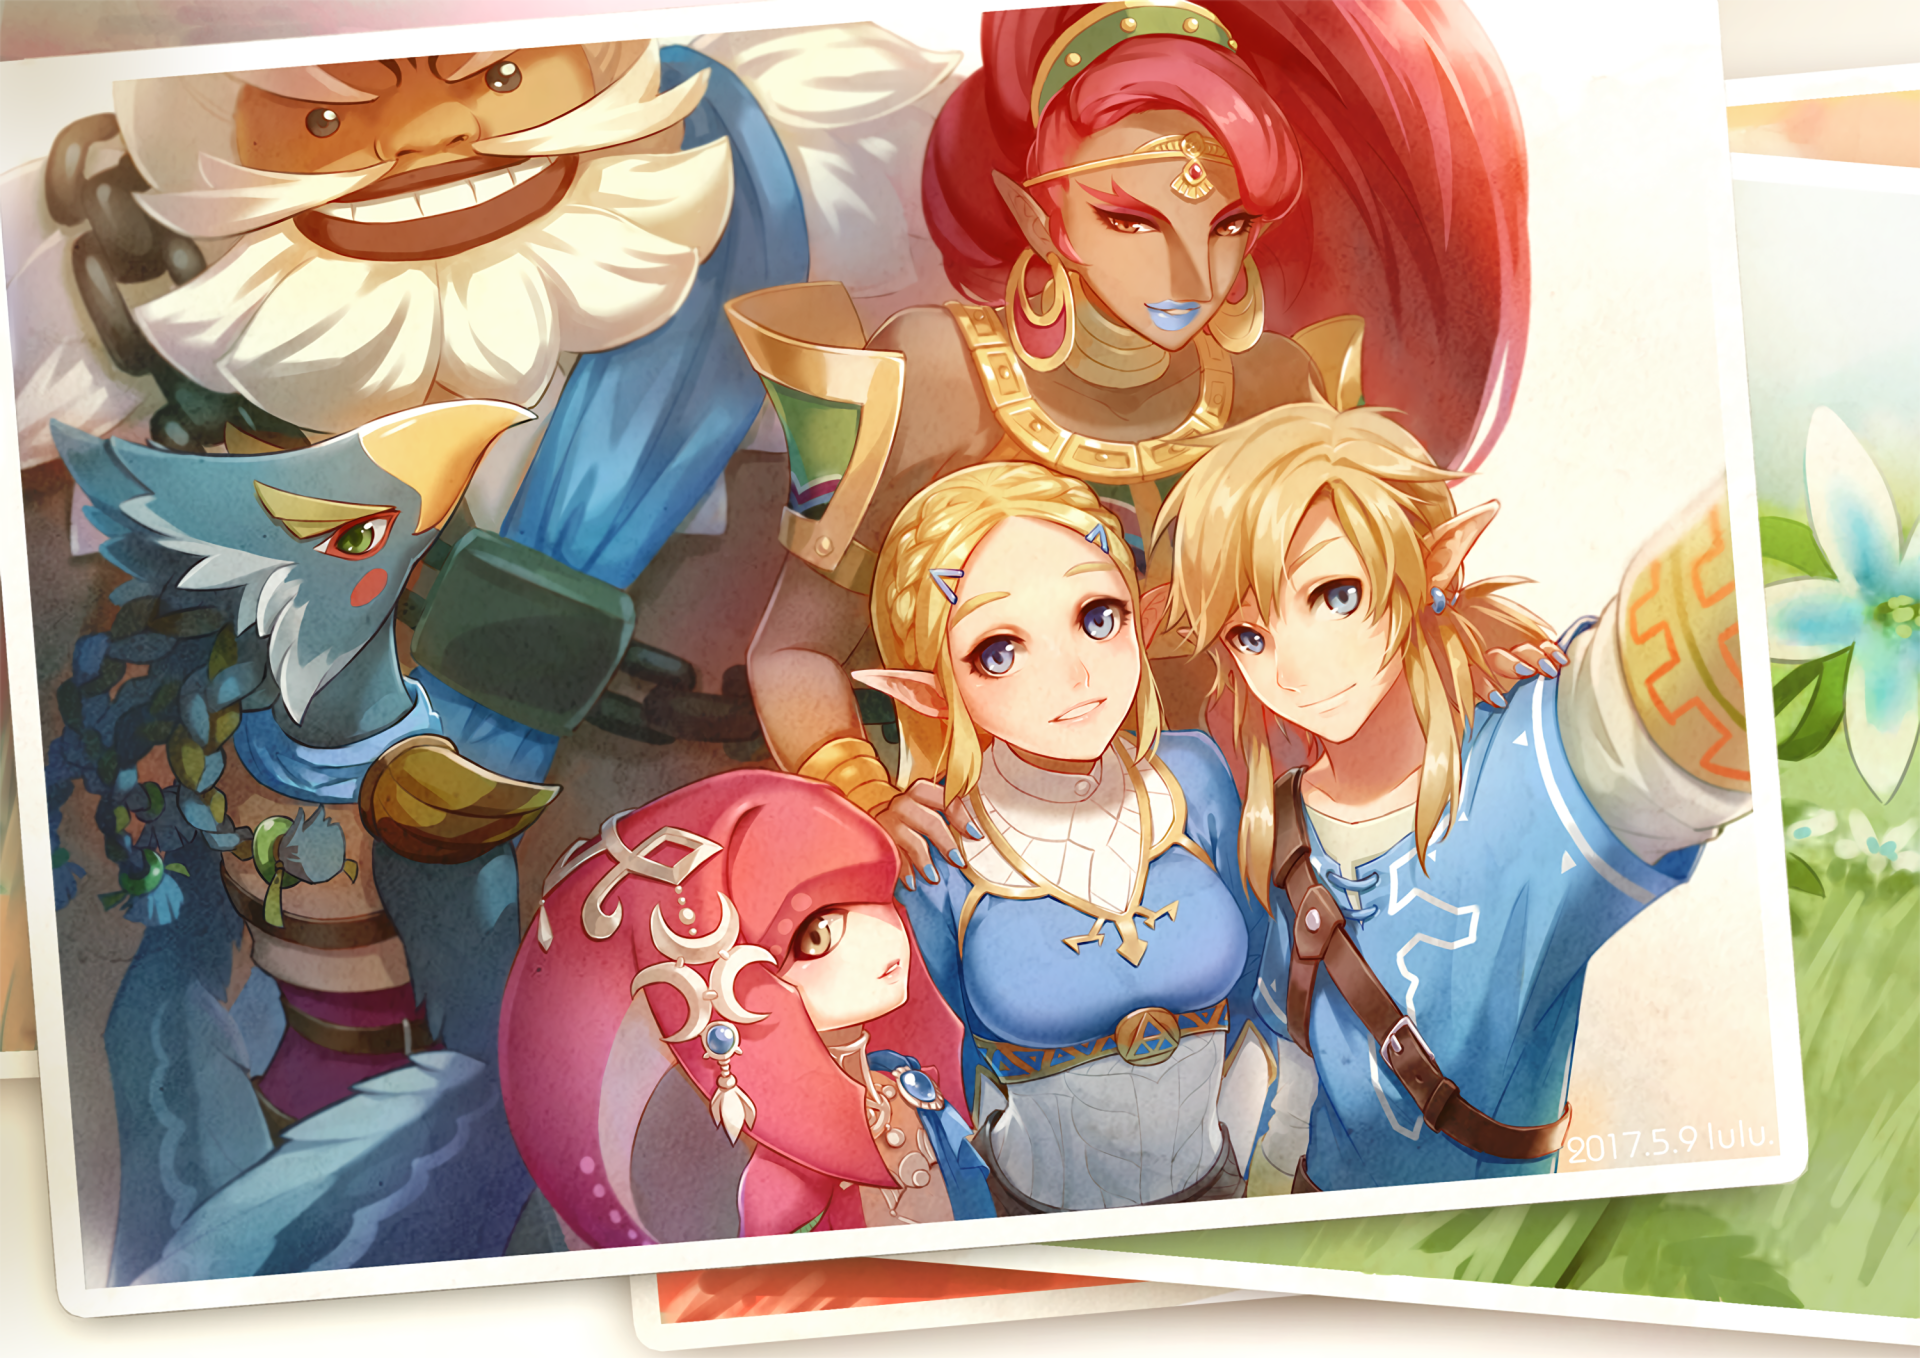 Video Game - The Legend of Zelda: Breath of the Wild  Link Zelda Mipha (The Legend Of Zelda) Revali (The Legend Of Zelda) Daruk (The Legend Of Zelda) Urbosa (The Legend Of Zelda) Wallpaper